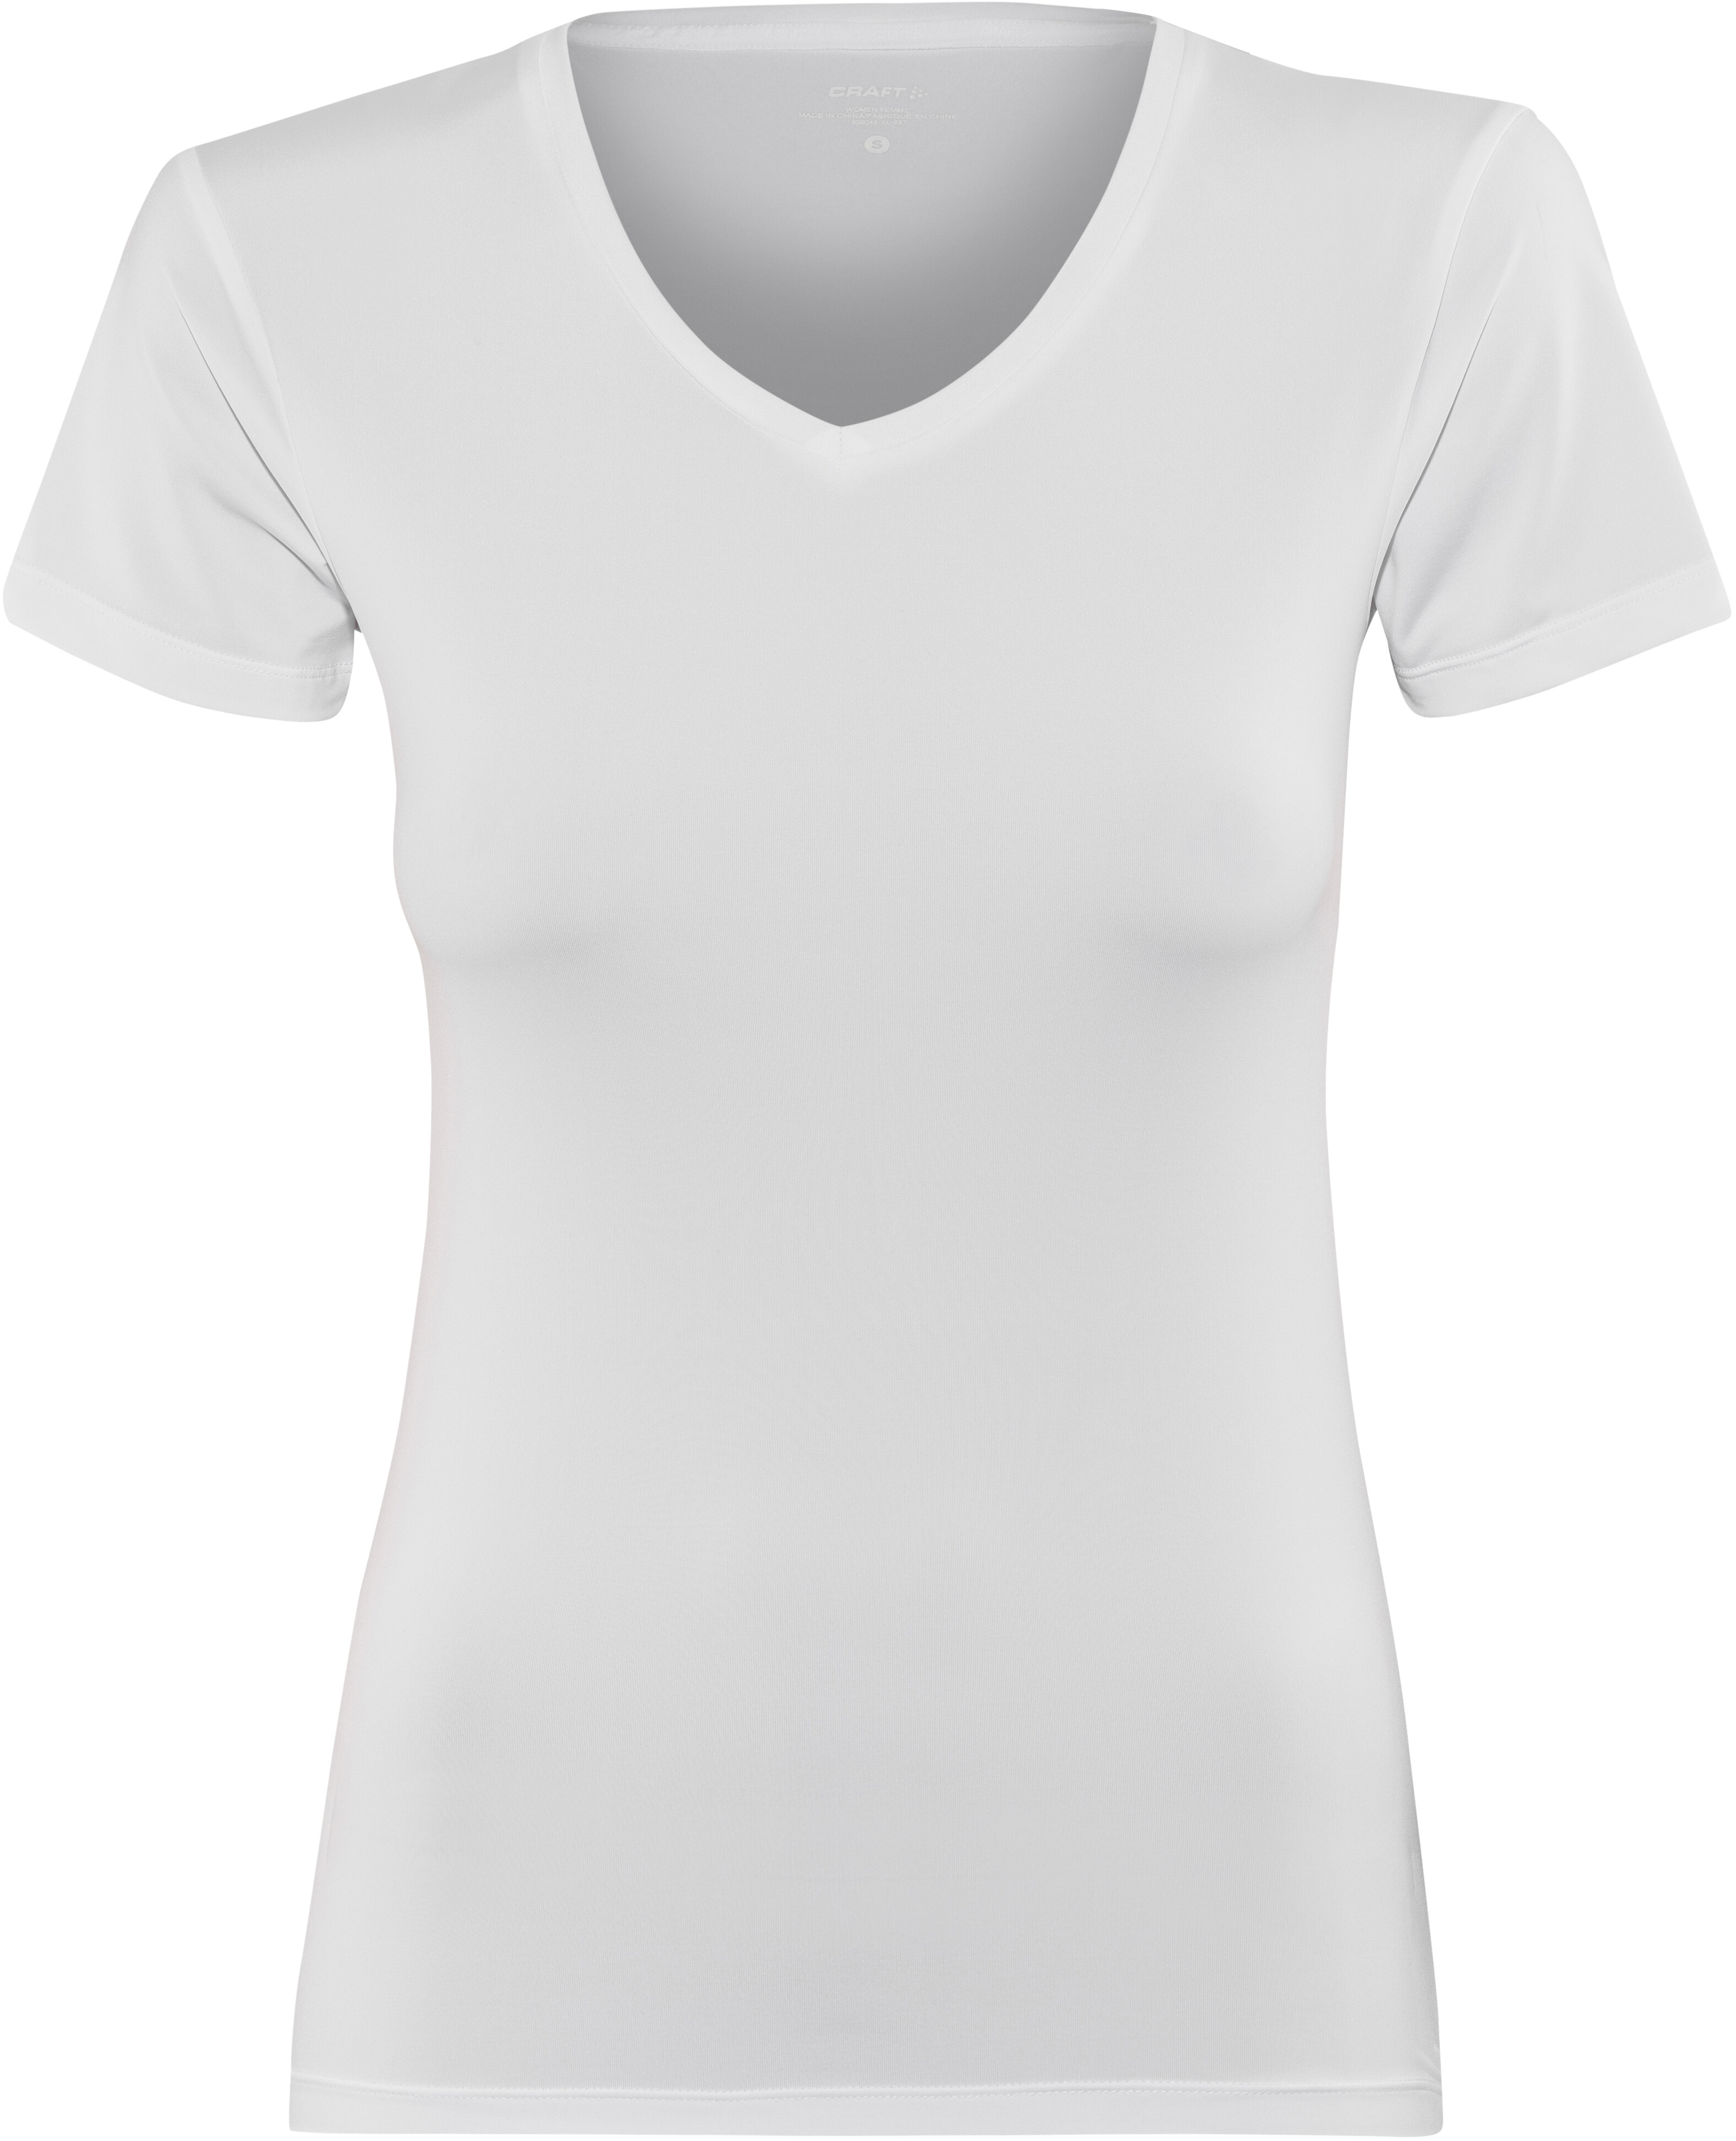 9c1f86f07b4 Craft Essential t-shirt Dames wit l Online outdoor shop Campz.nl